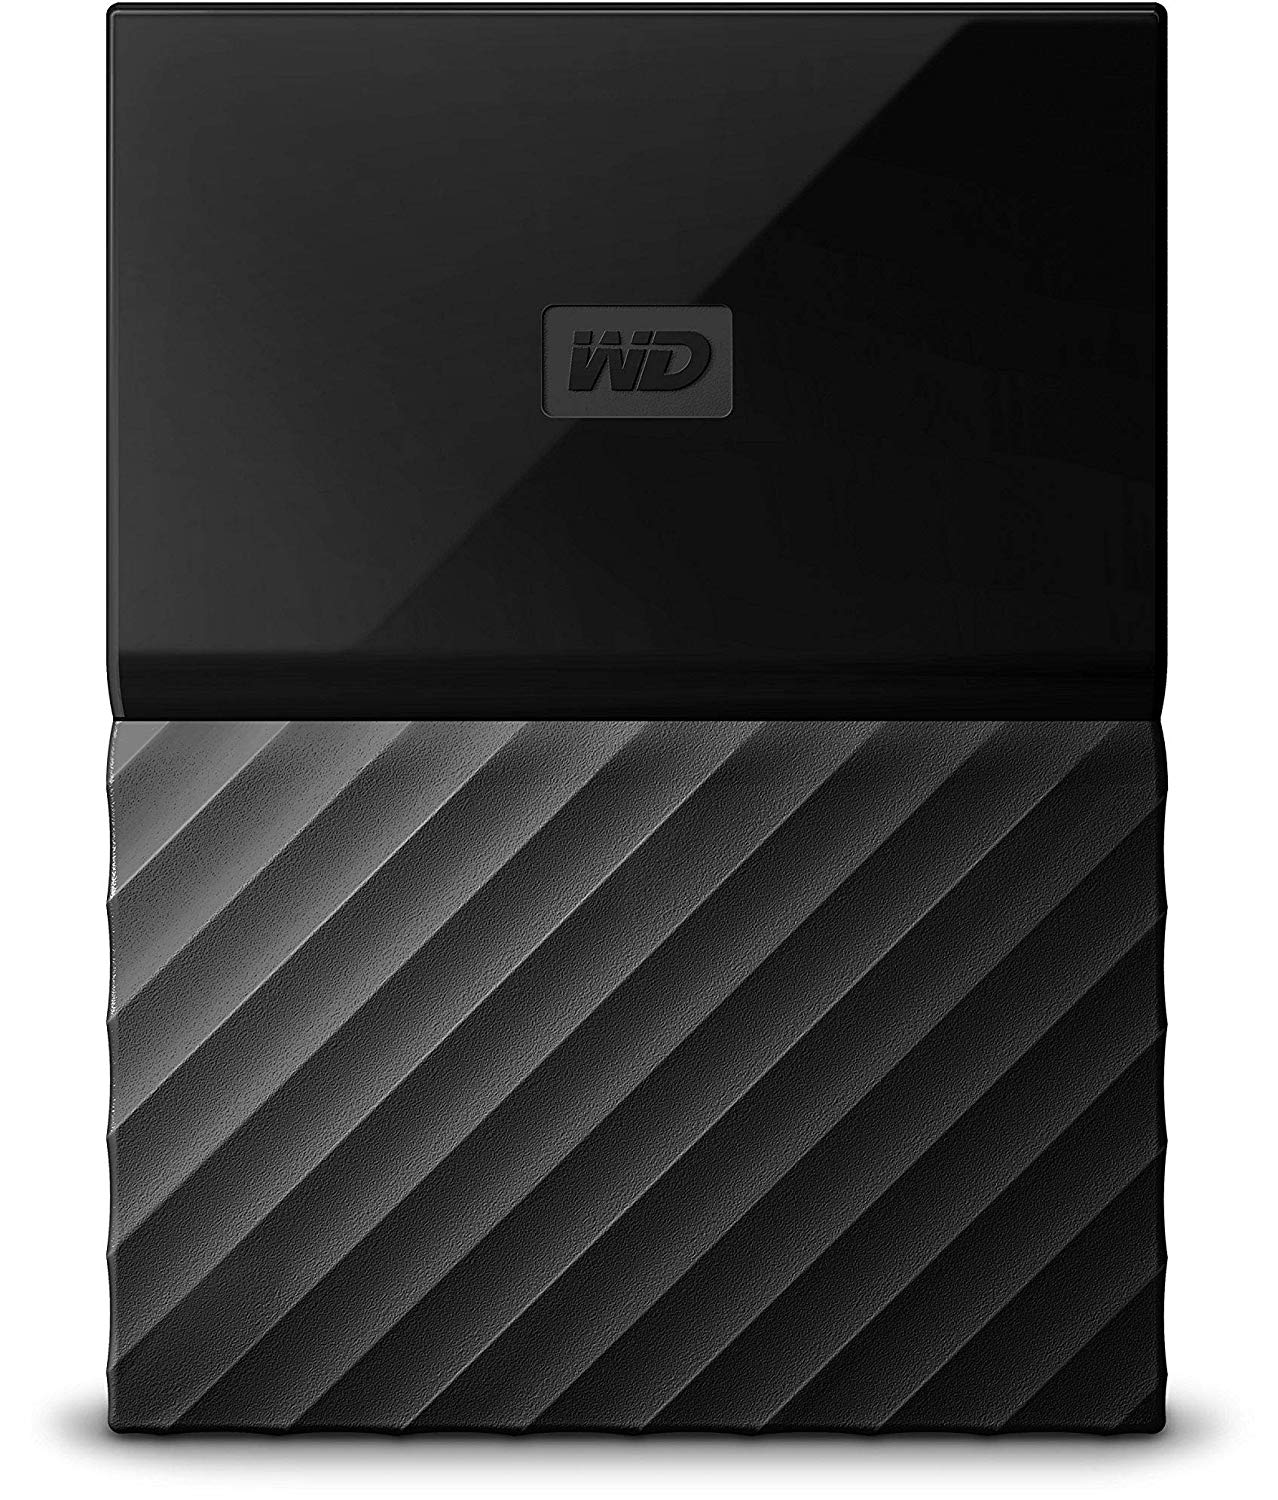 WD 2TB My Passport USB 3.0 Secure Portable Hard Drive Black